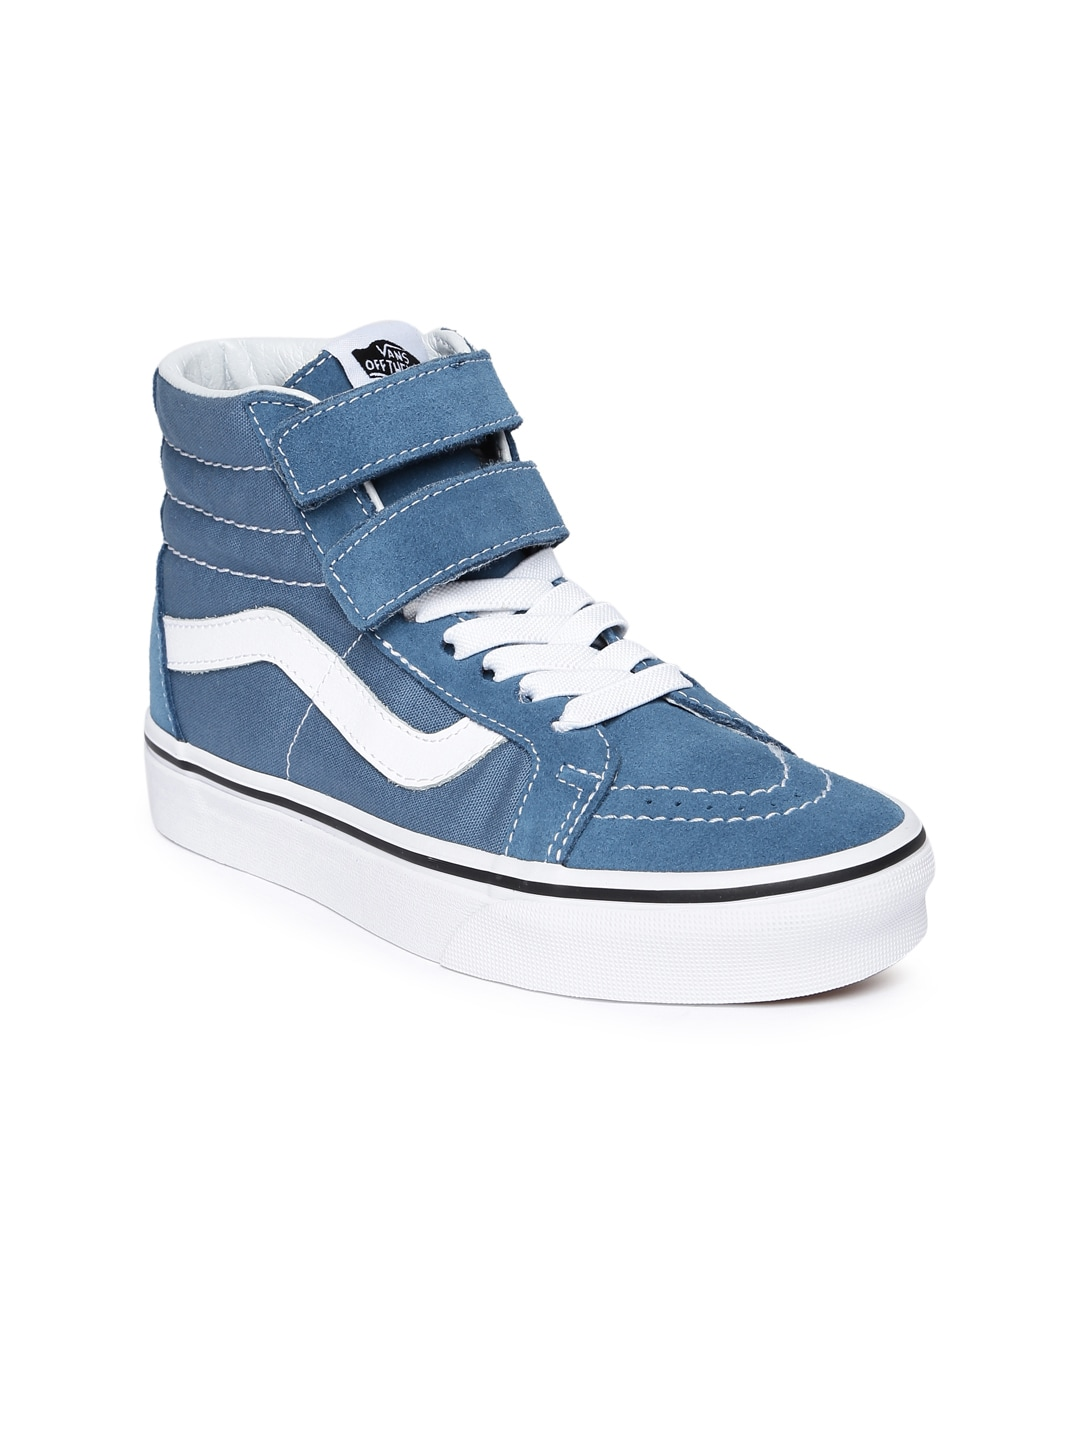 3e40f63018 Vans Mid Tops Footwear - Buy Vans Mid Tops Footwear online in India